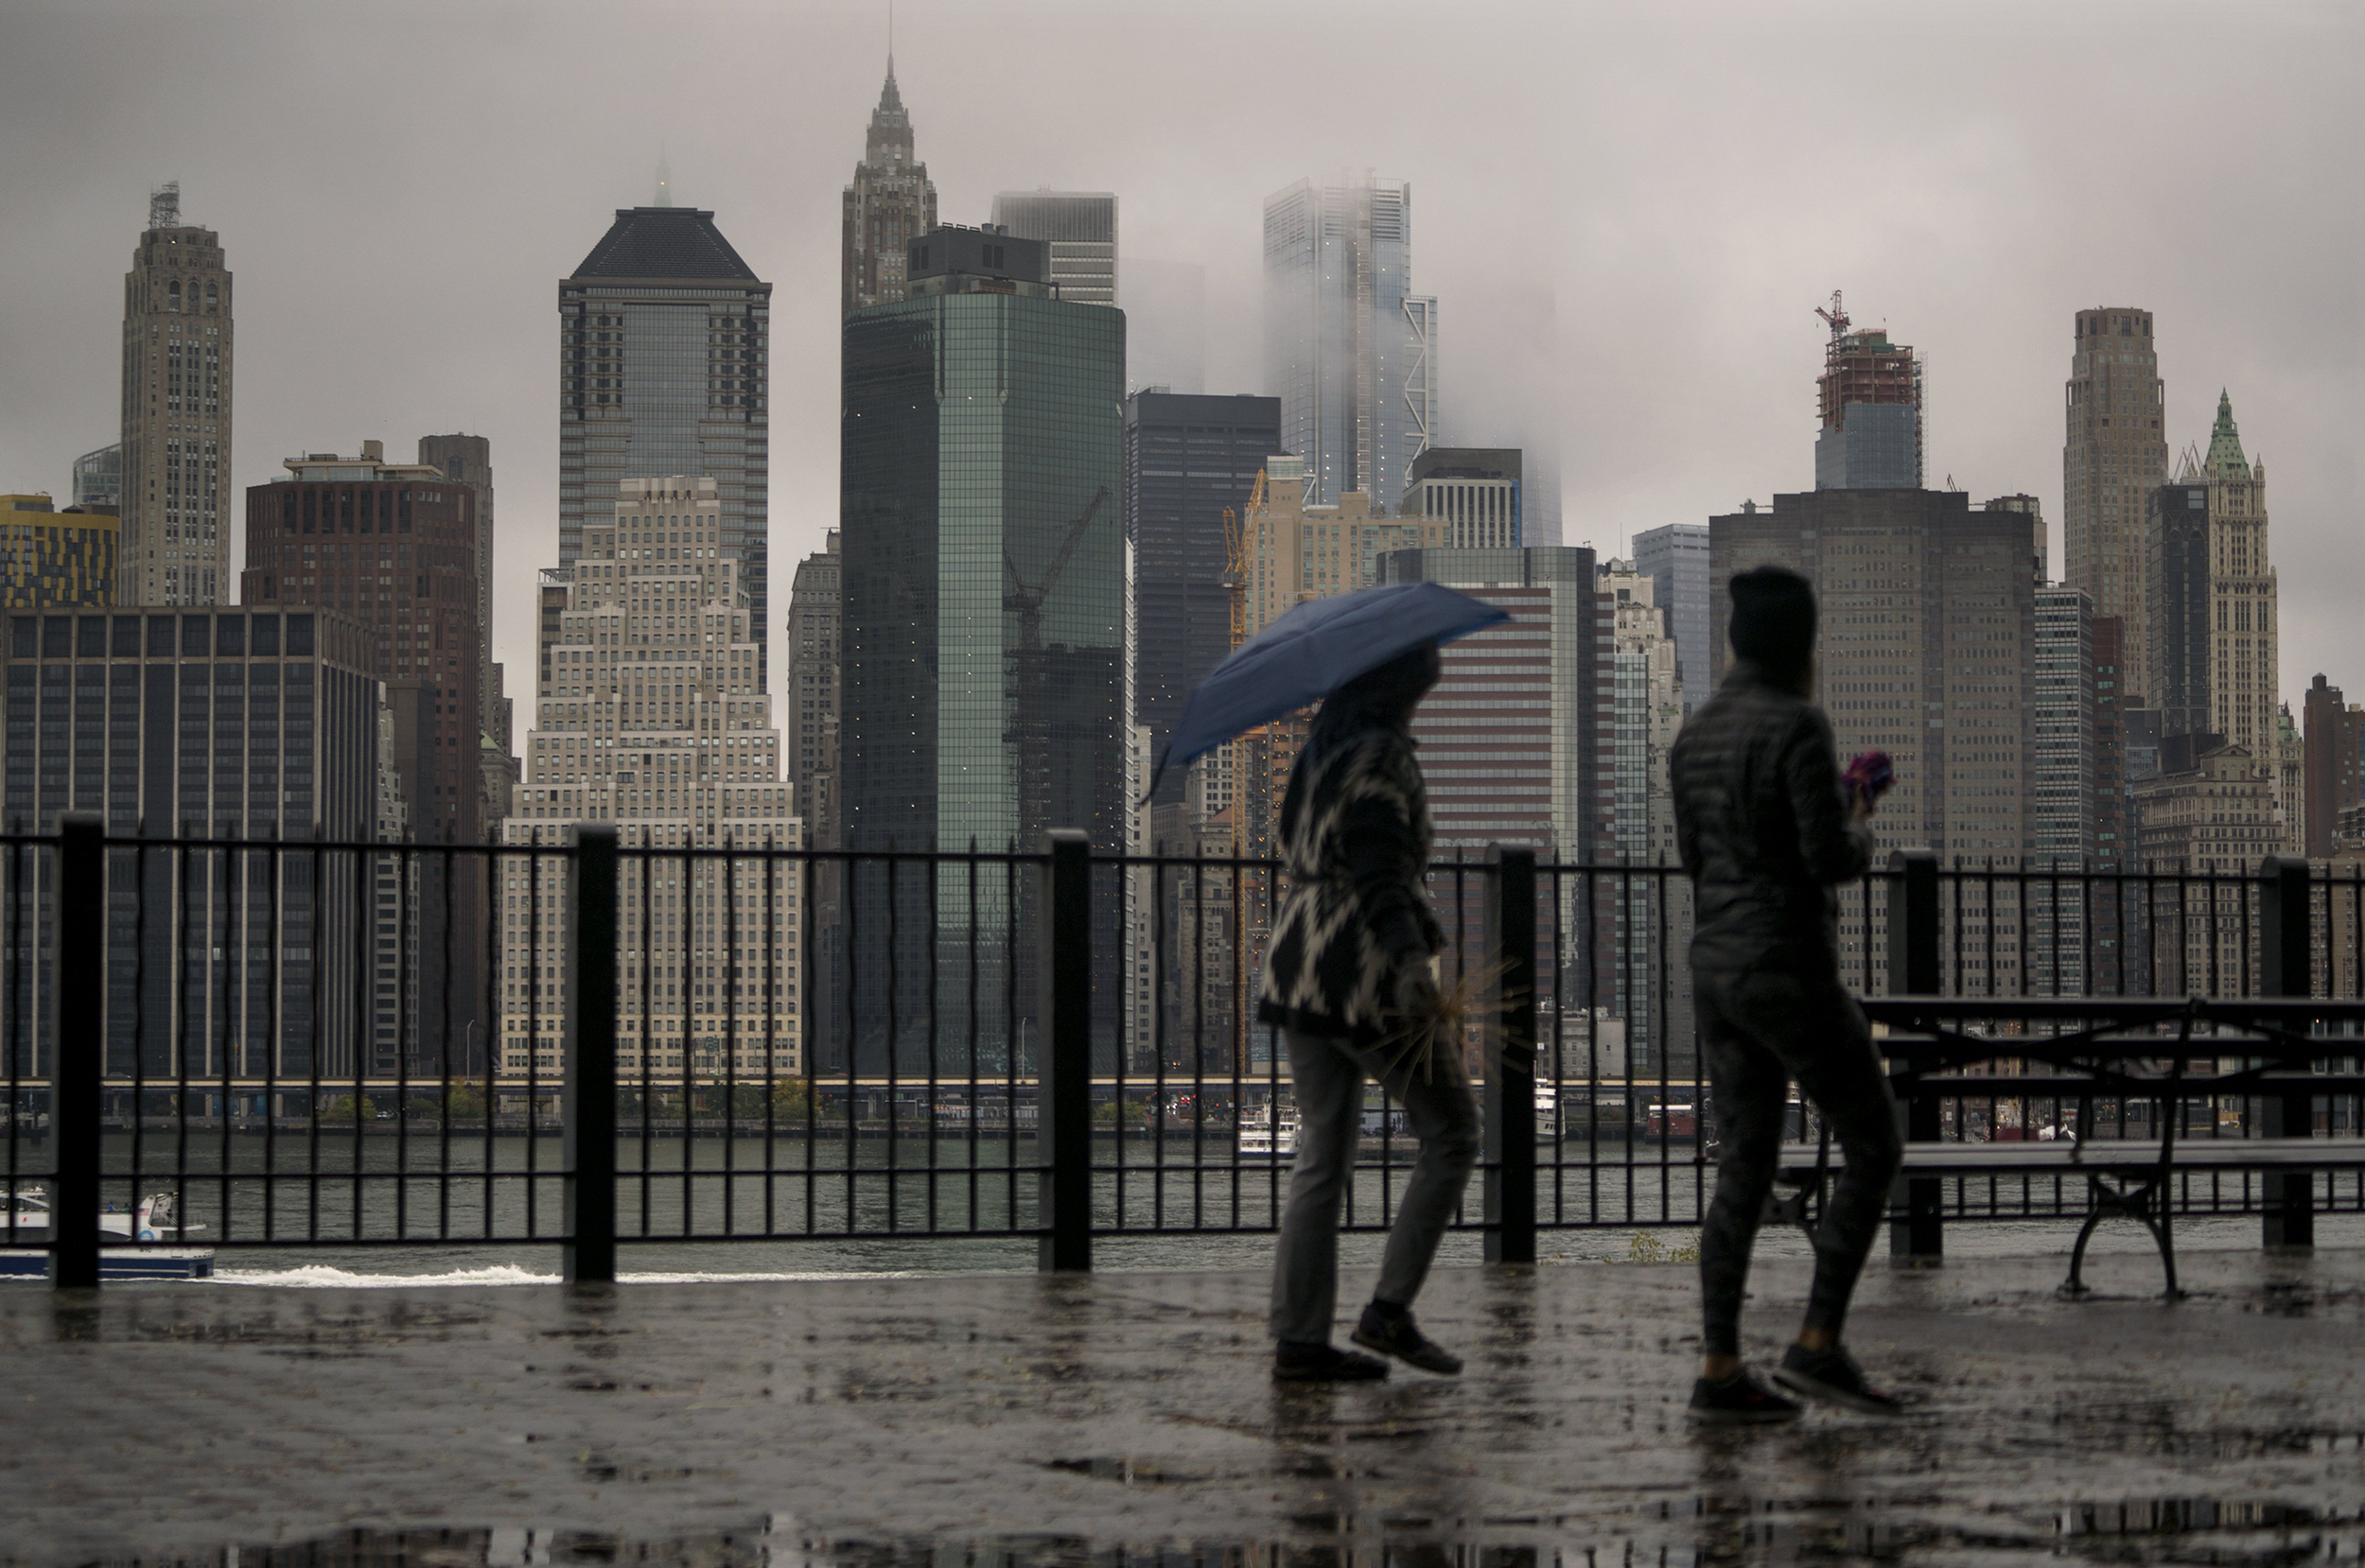 Image: Passersby walk along the Promenade in the Brooklyn Heights neighborhood as rain and clouds loom over lower Manhattan